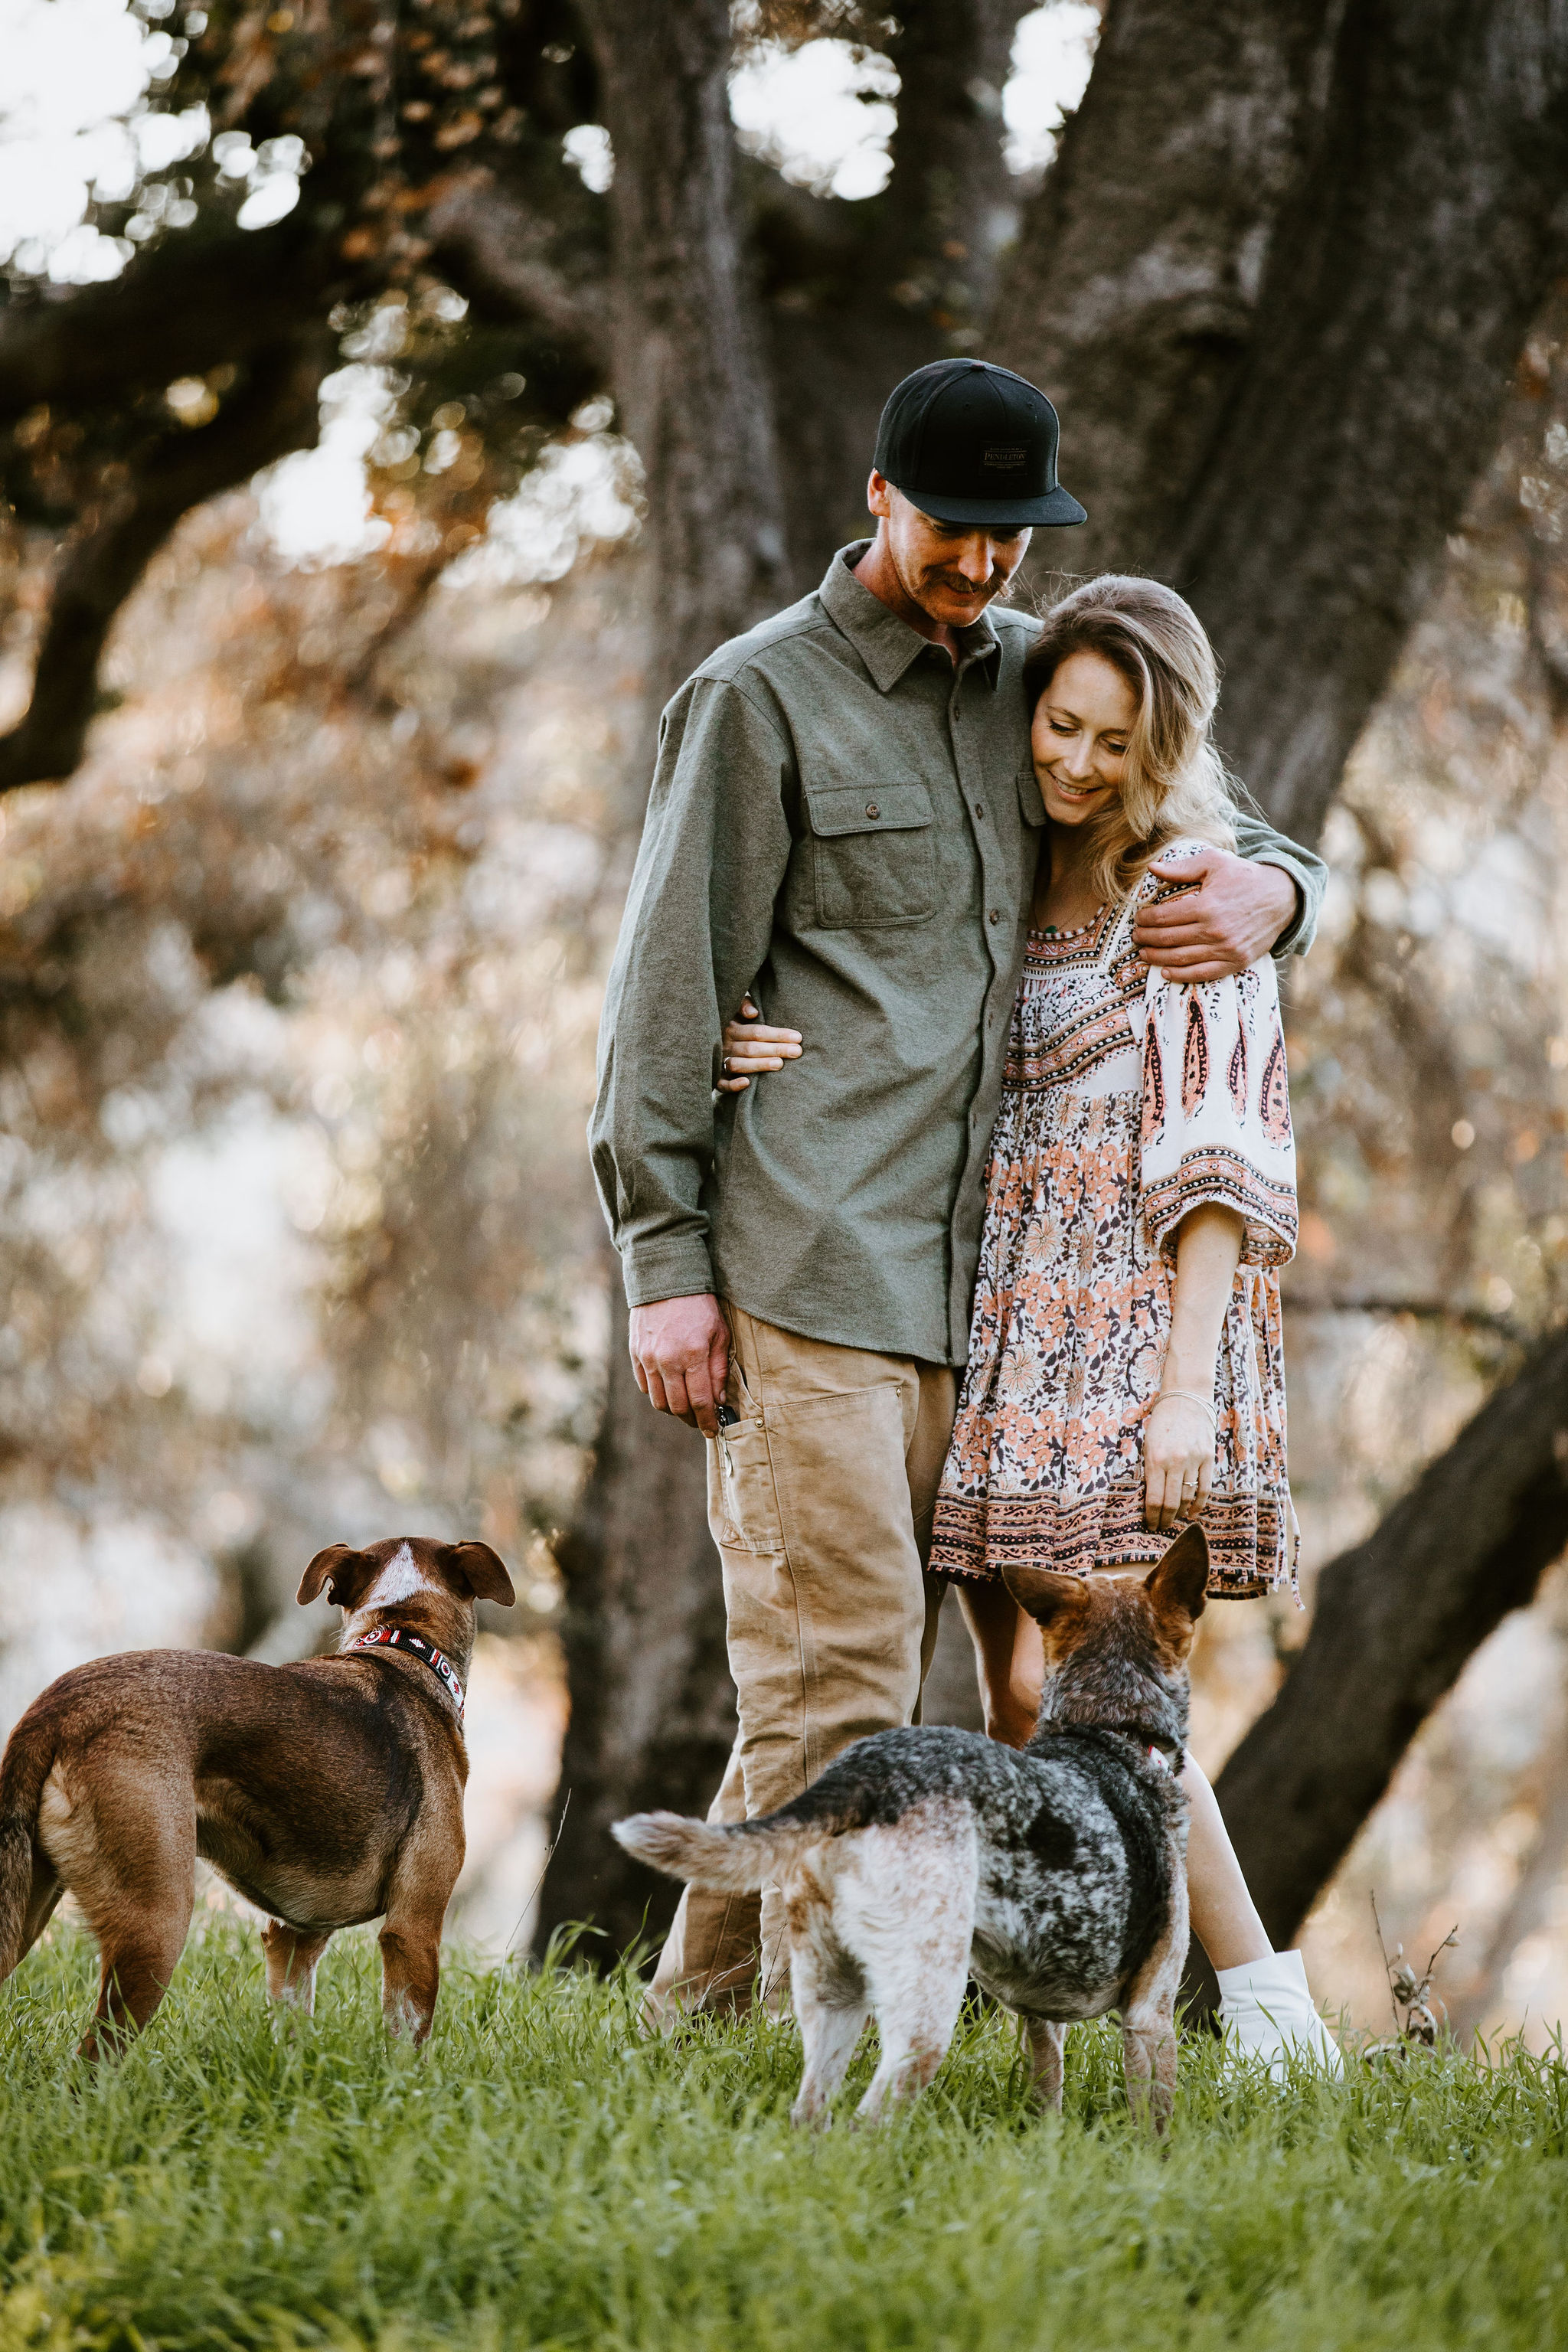 OjaiEngagementSession_Geoff&LyndsiPhotography_Eveline&Scotty46.jpg